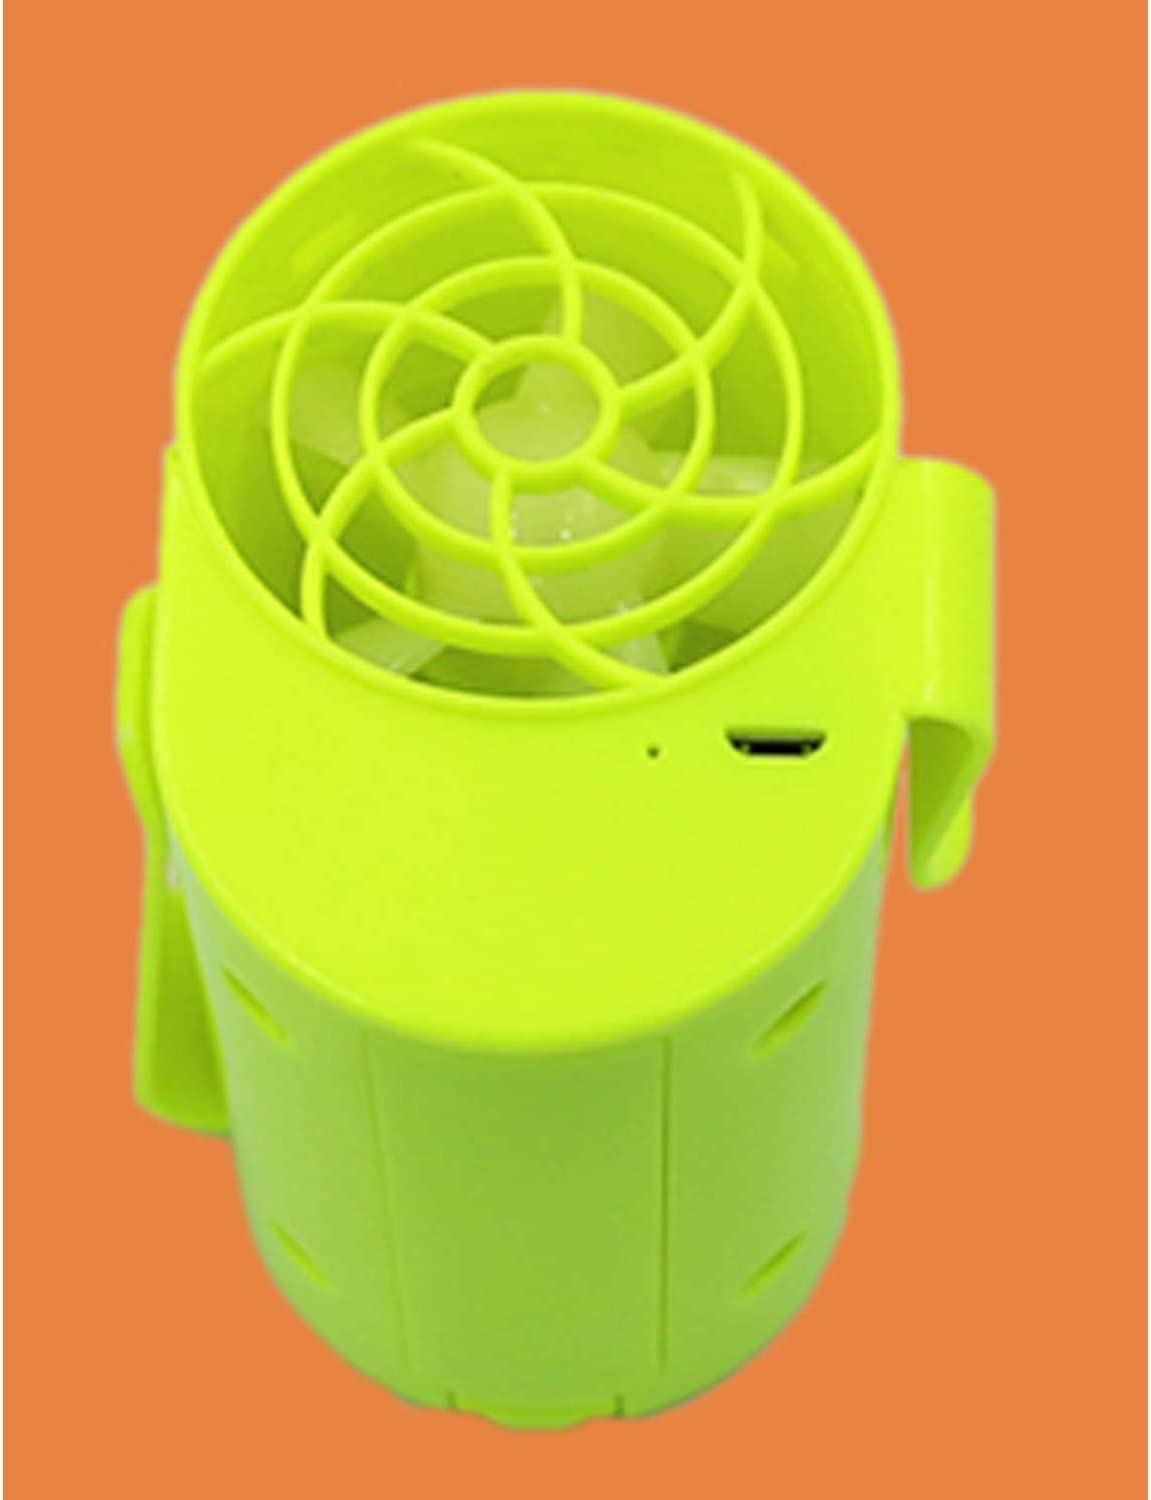 Color : Green ZHANGQIAO-AE Hanging Waist Outdoor Fan USB Charging Small Fan Portable Miniskirt Expectant Wind Lithium Battery Personal Fans Mini USB Desktop Fan Small Personal Silent Fan Por